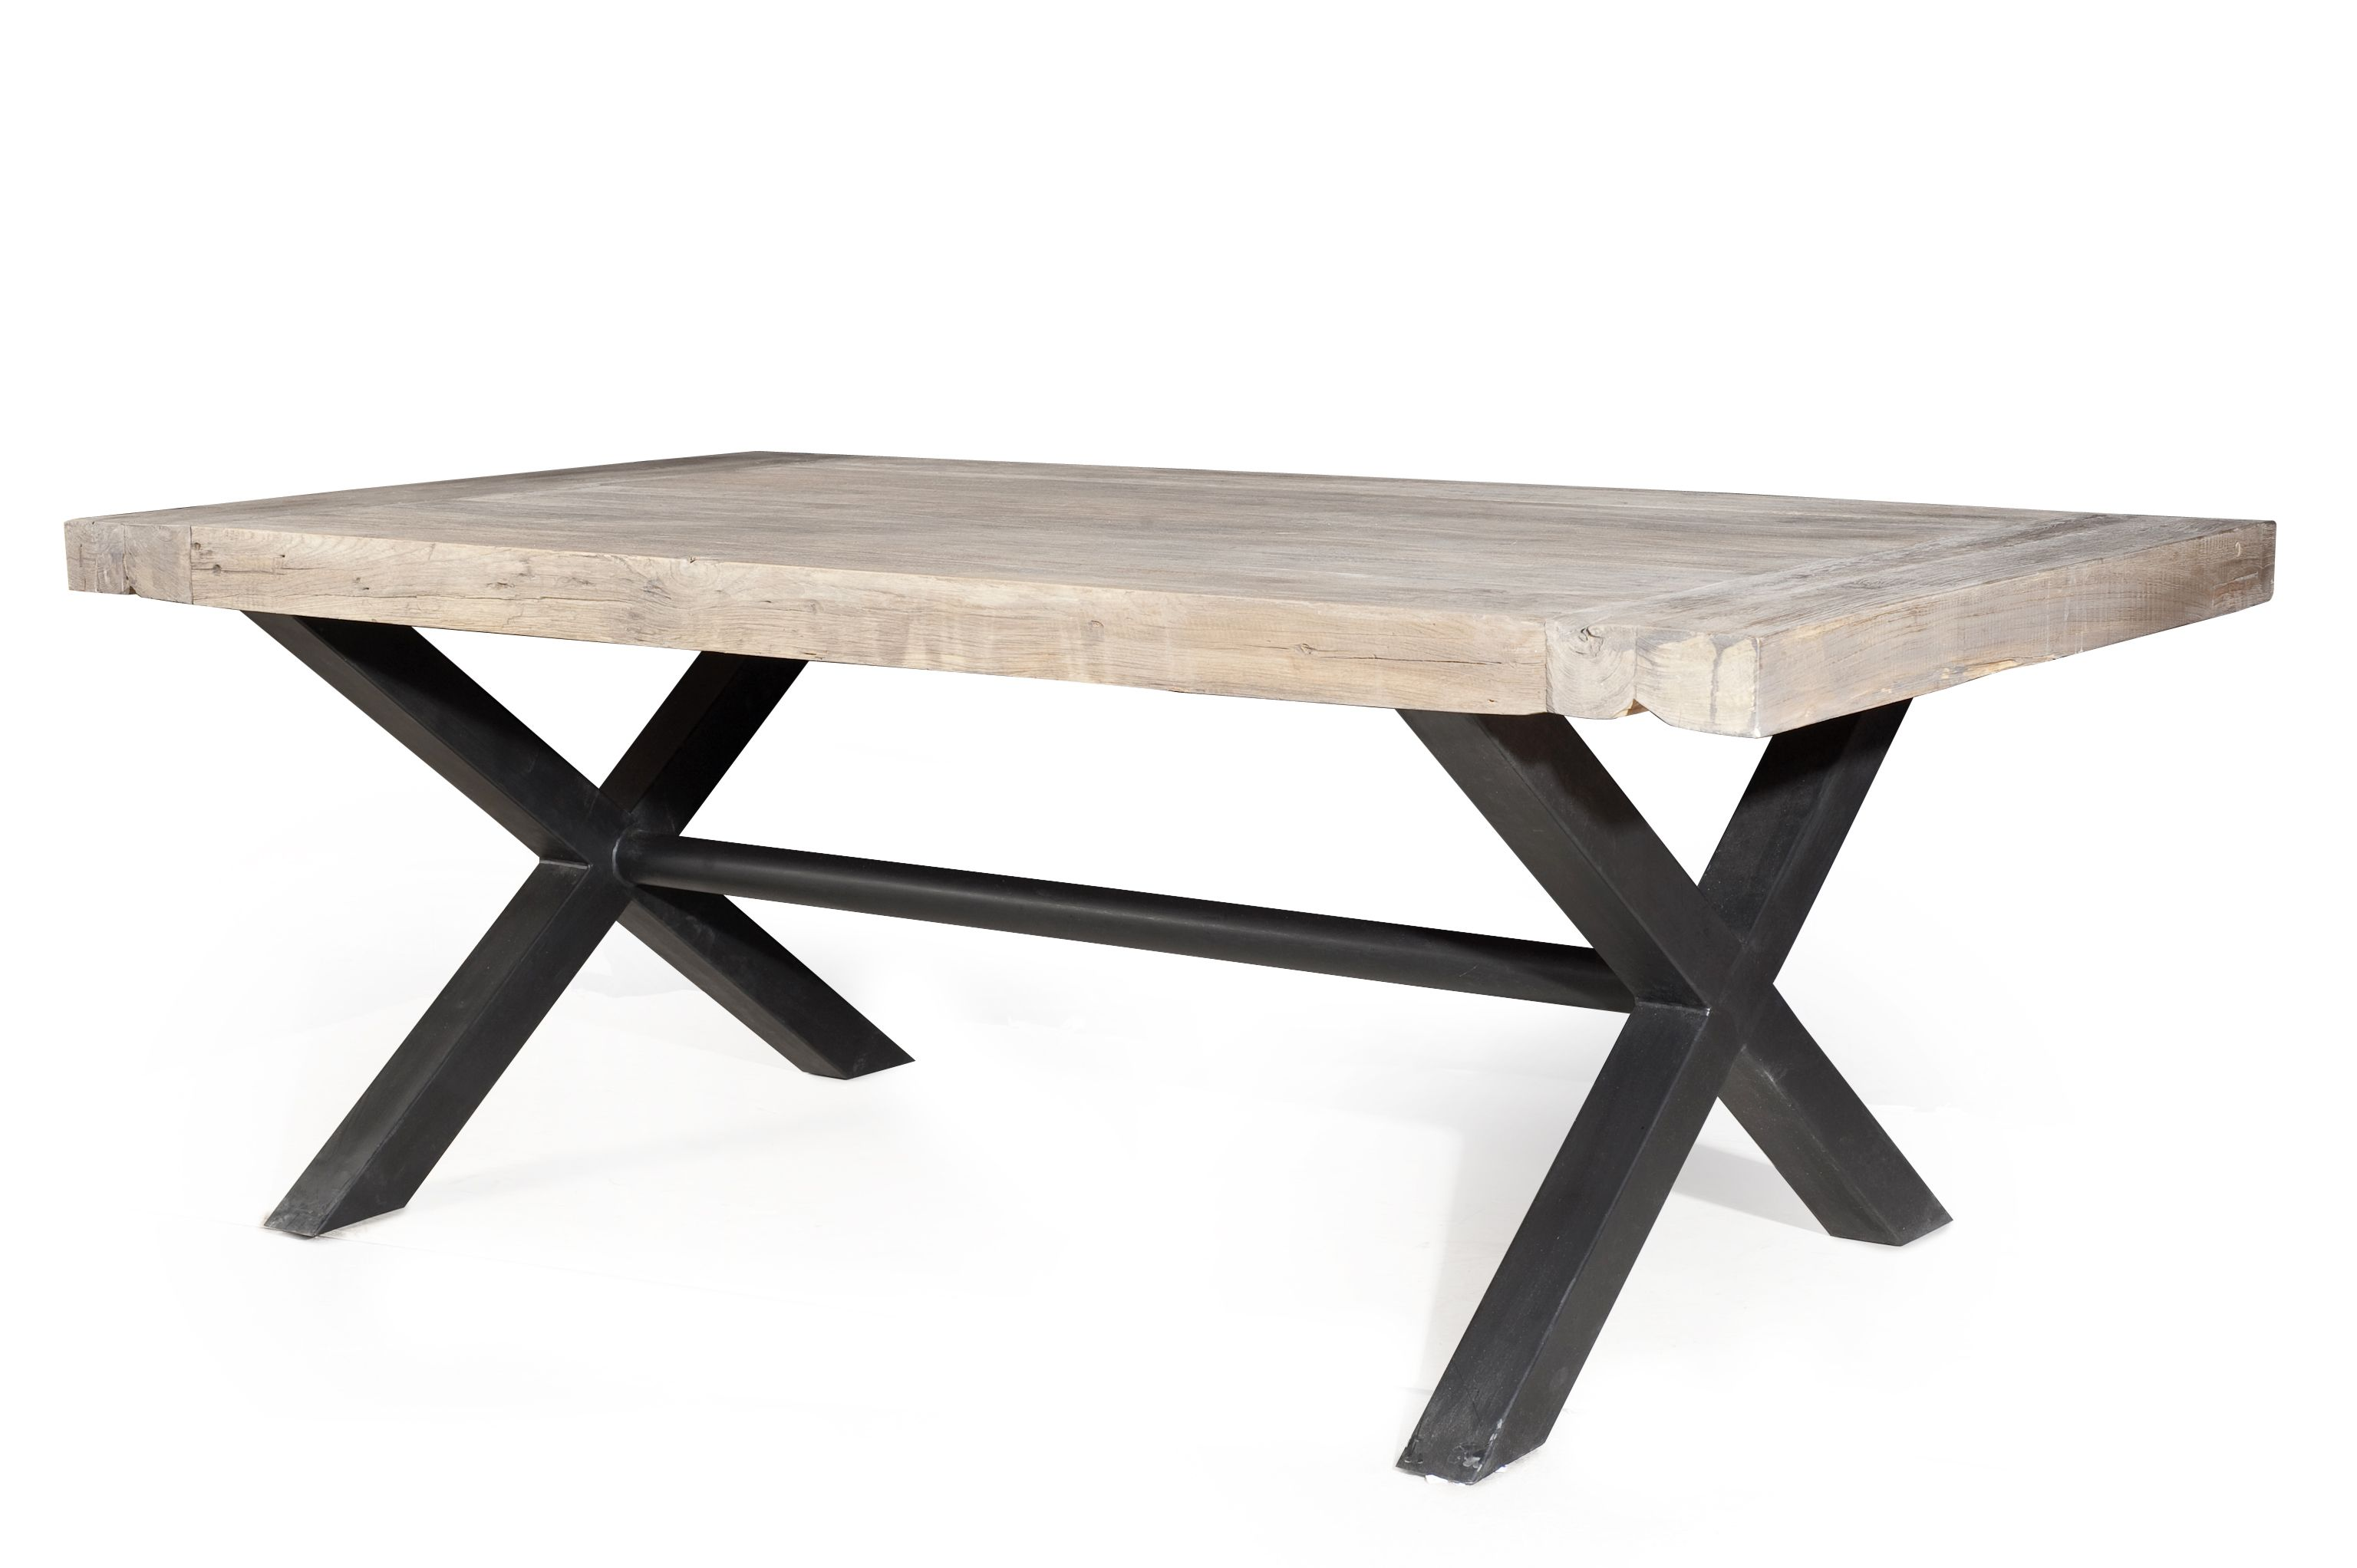 Pied De Table Fer Pied De Table Fer Table Pied Fer Forge